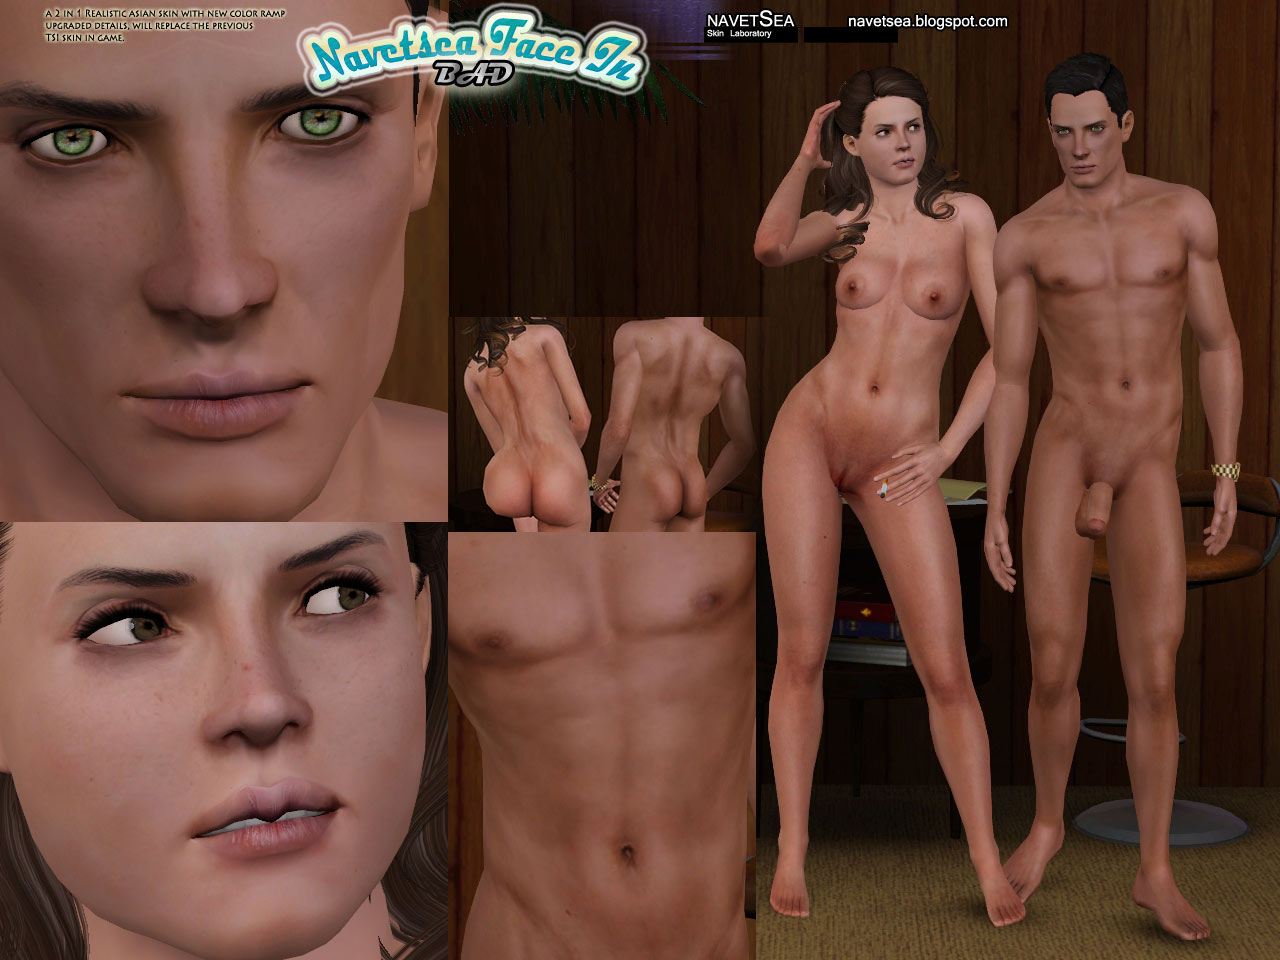 The sims 4 nudes hairy porn photo